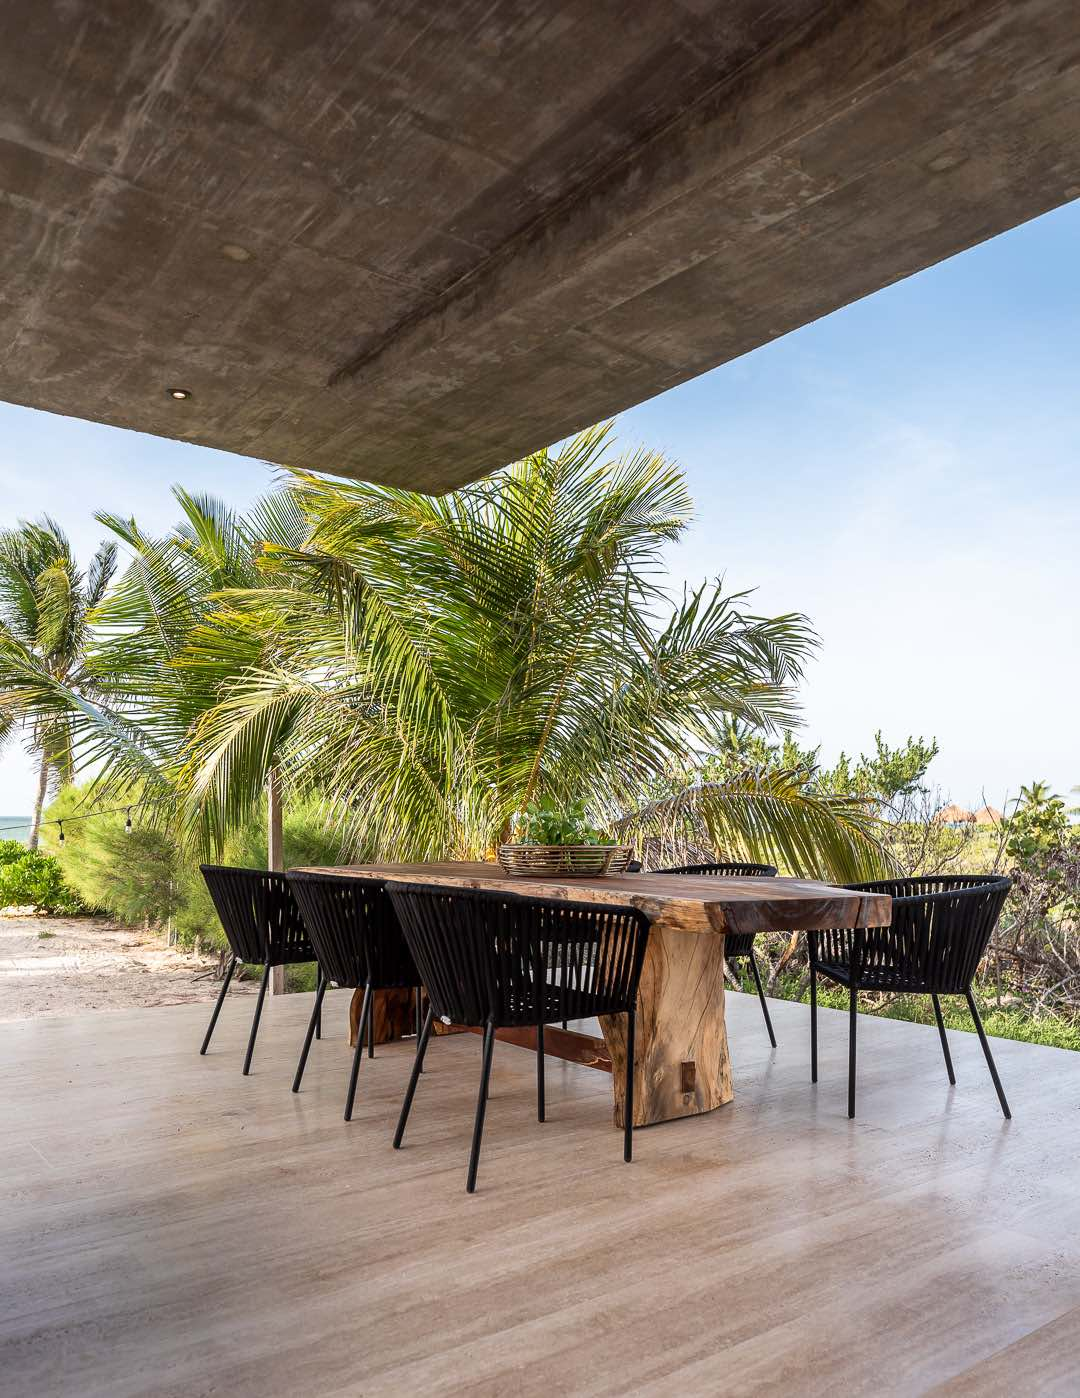 Casa Gamela designed by Laboratorio de Arquitectura in Yucatan Mexico